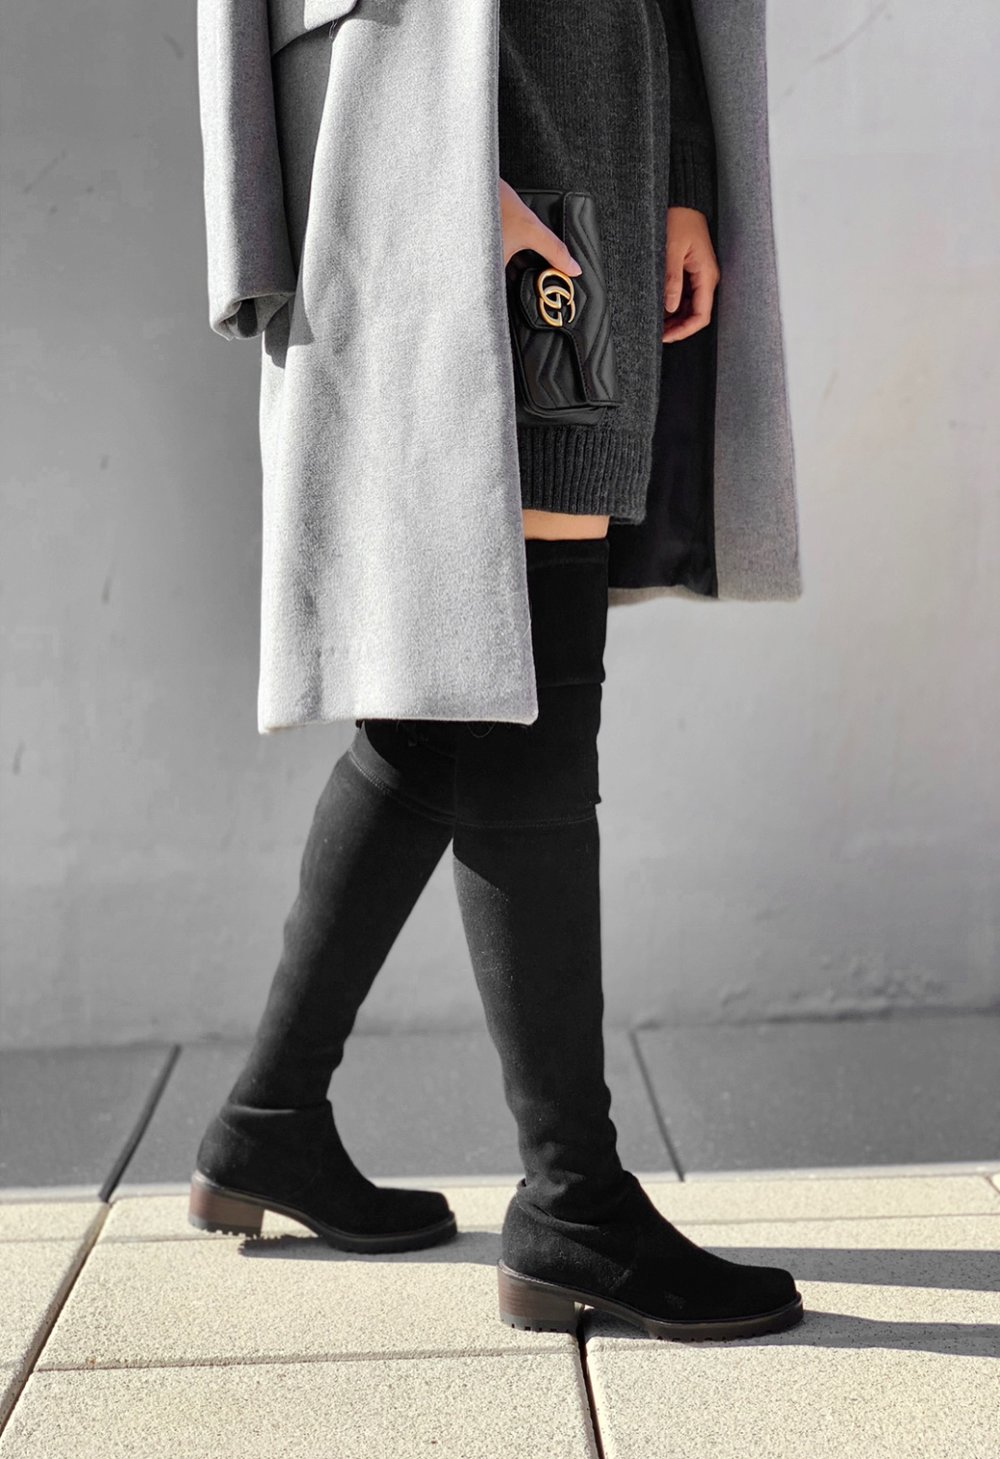 Best Stylish Winter Boots - over the knee boots